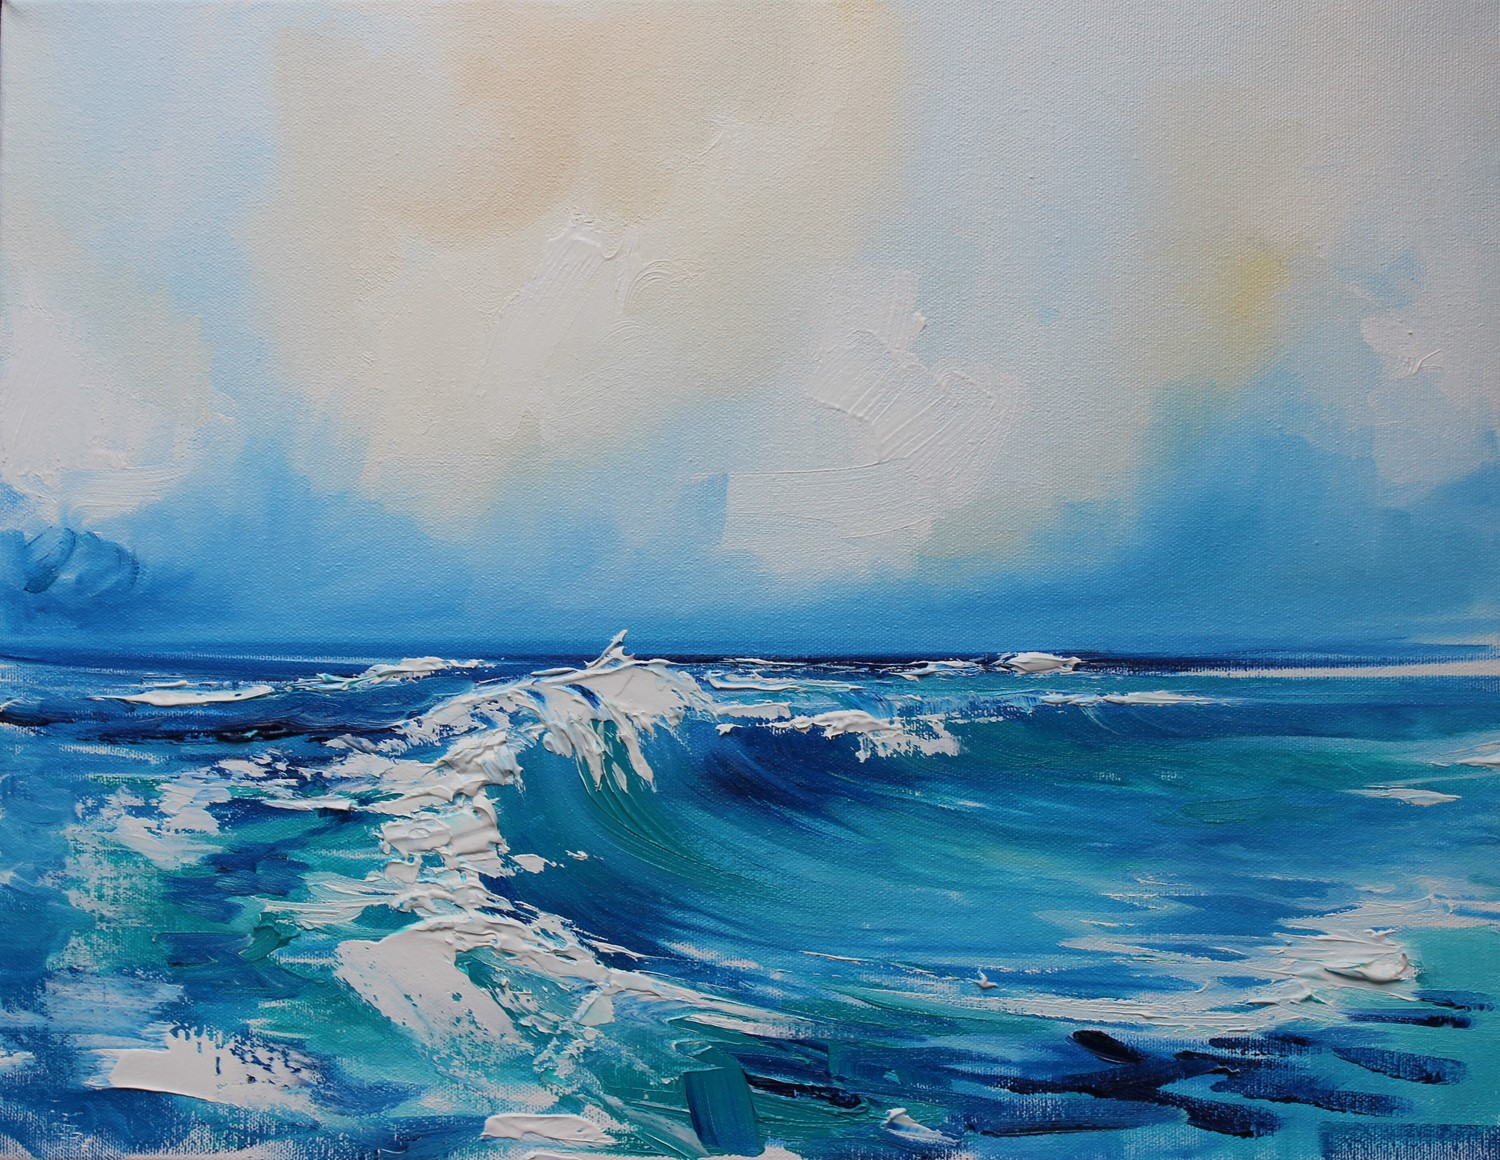 'Curving Wave' by artist Rosanne Barr